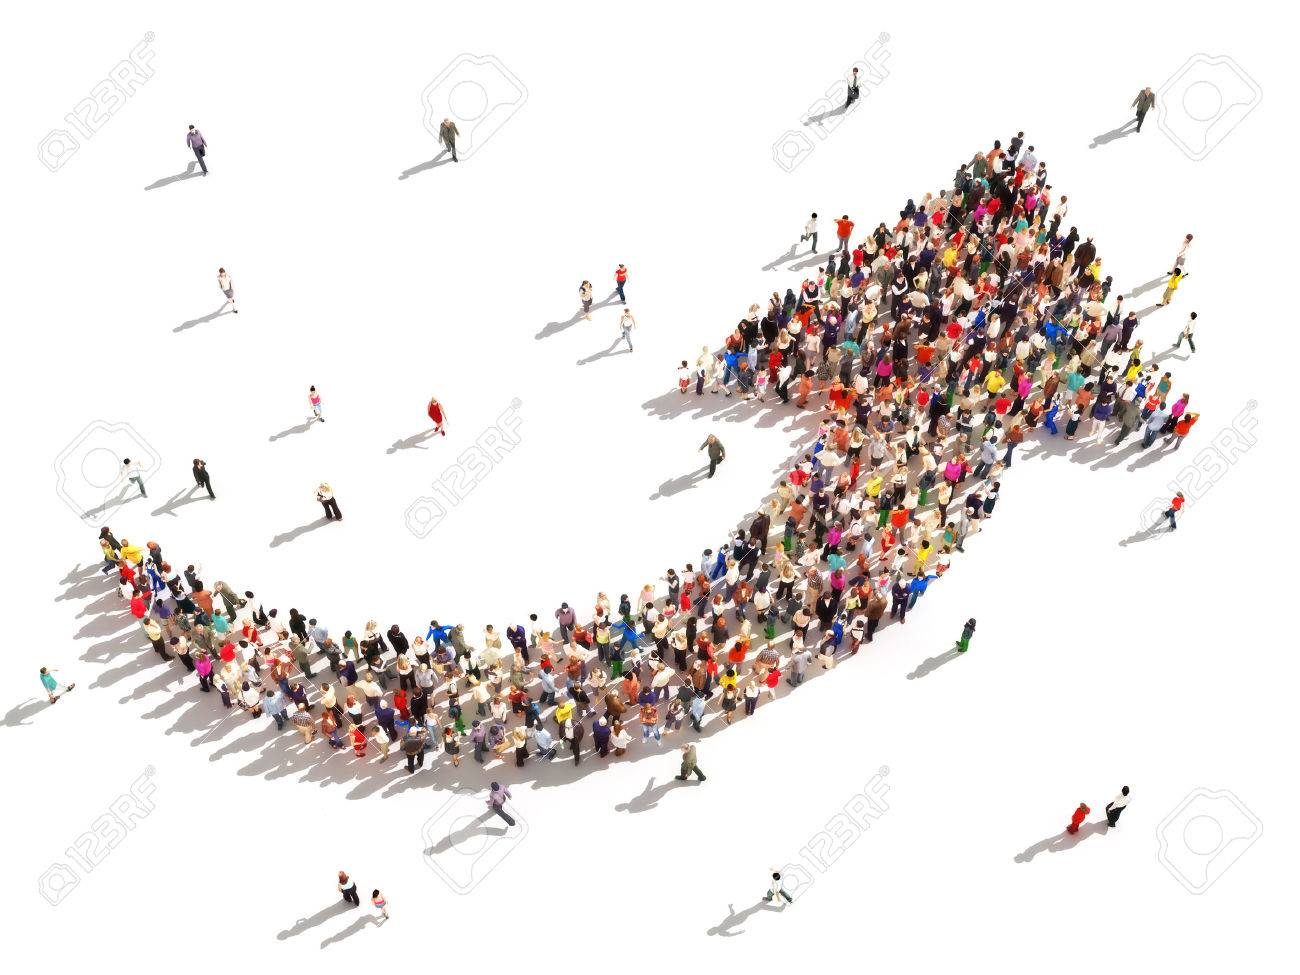 People with direction Large group of people in the shape of an arrow pointing up symbolizing direction , progress or growth - 29840814